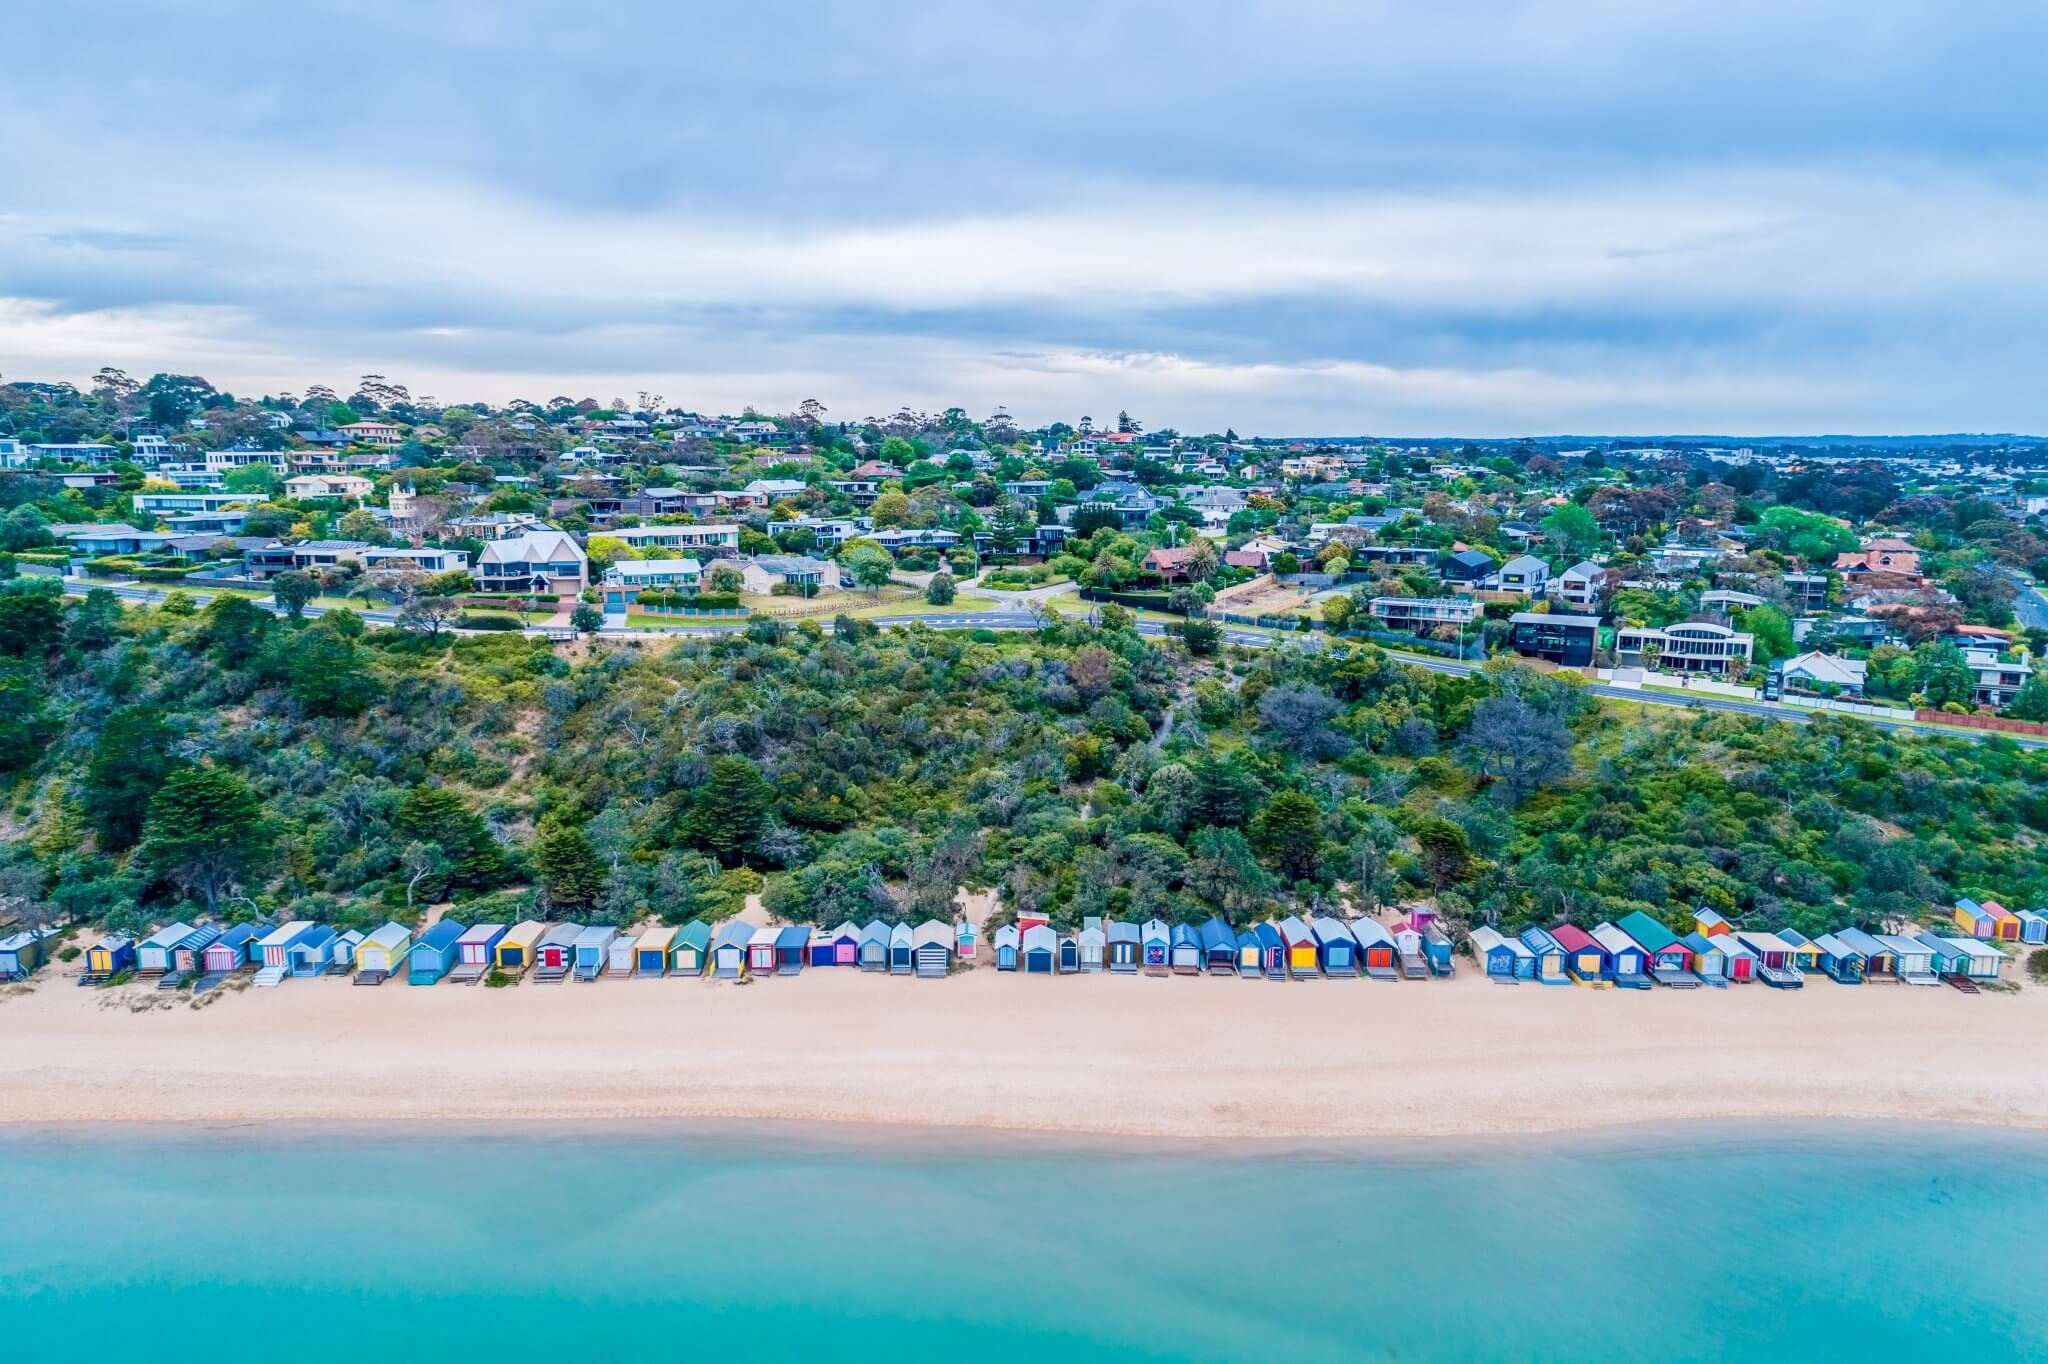 Aerial view of picturesque beach huts on Mills Beach in Mornington, Victoria, Australia